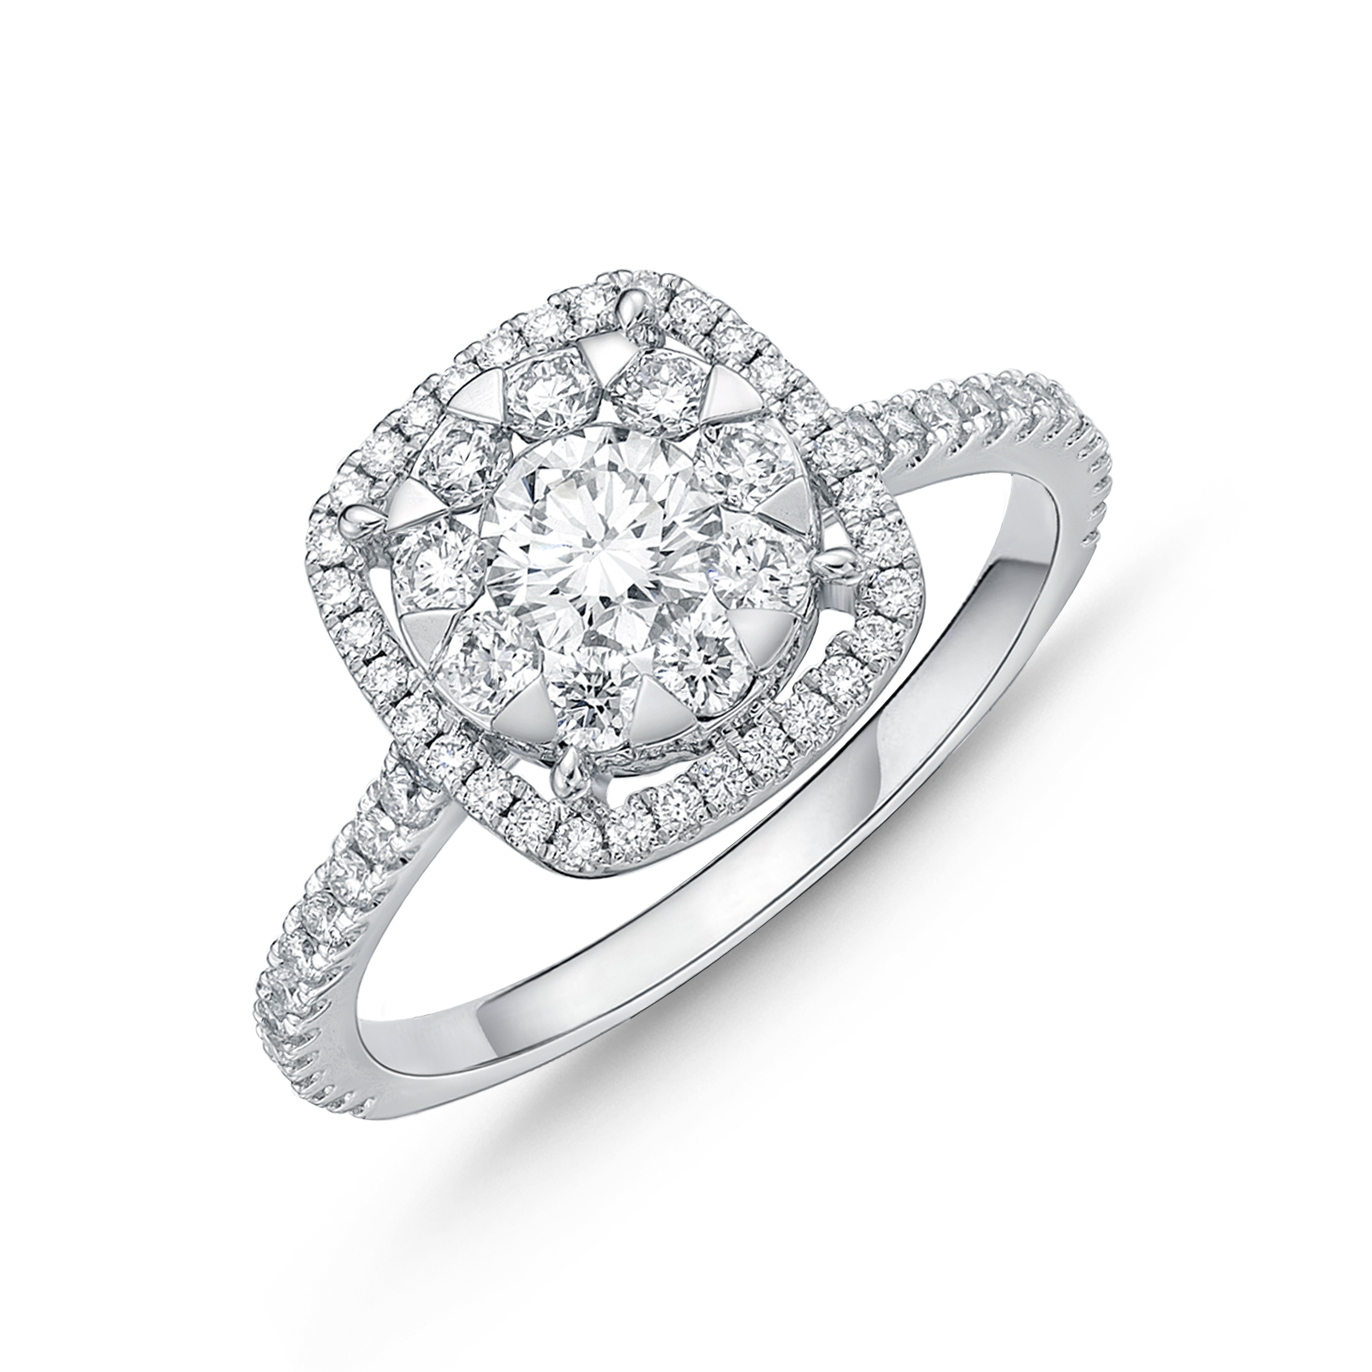 Memoire 18ct White Gold 3/4 Carat Diamond Bouquet Cushion Halo Solitaire Ring